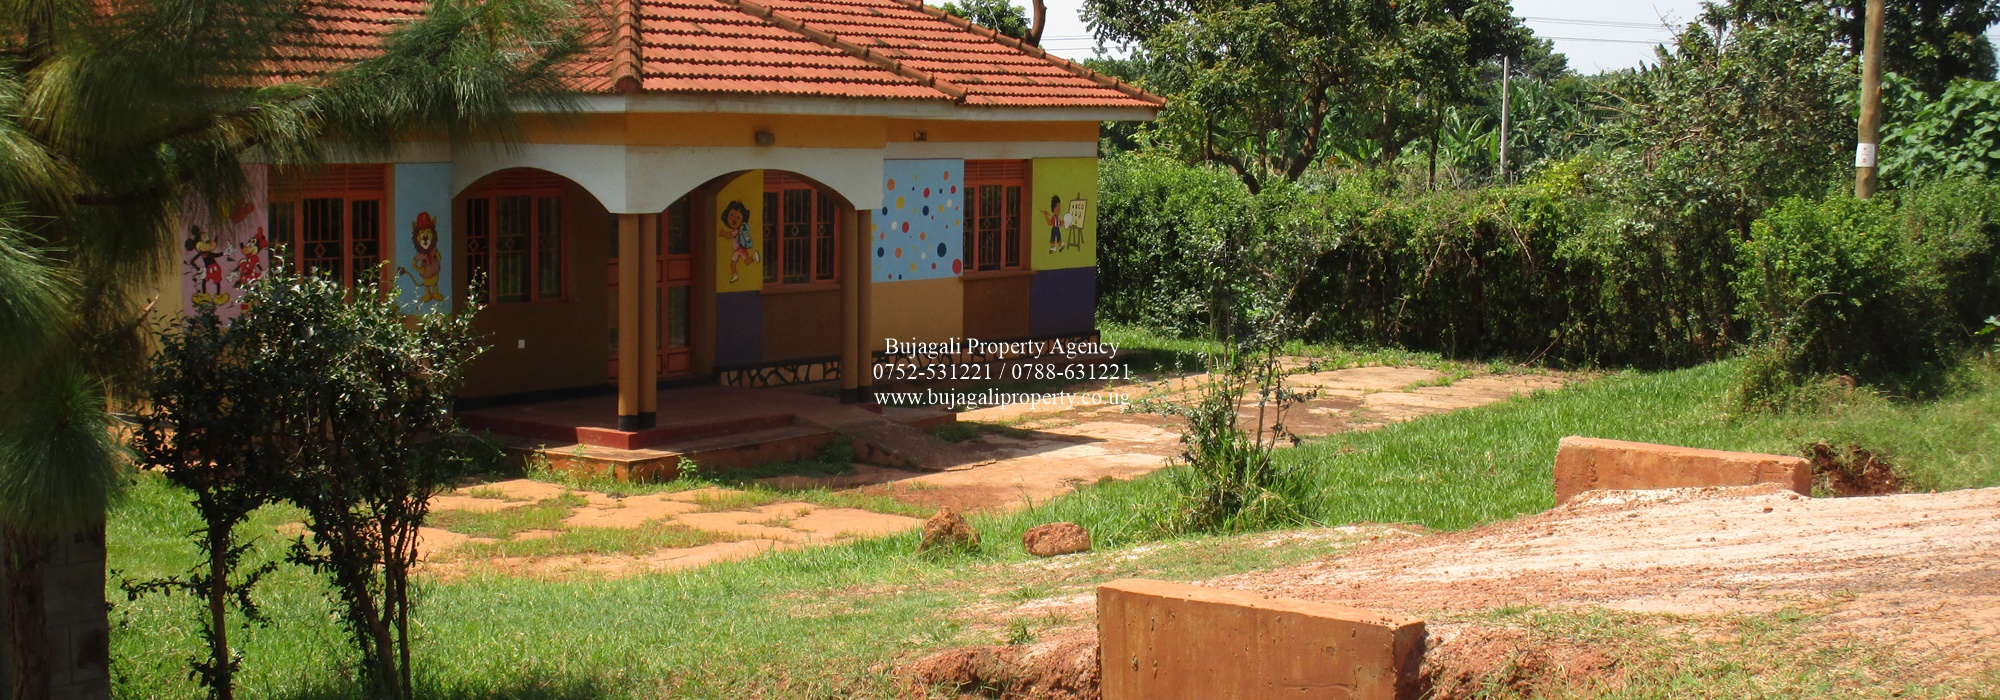 HOME FOR RENT / SALE ALONG THE ROAD AT BUKAYA JINJA